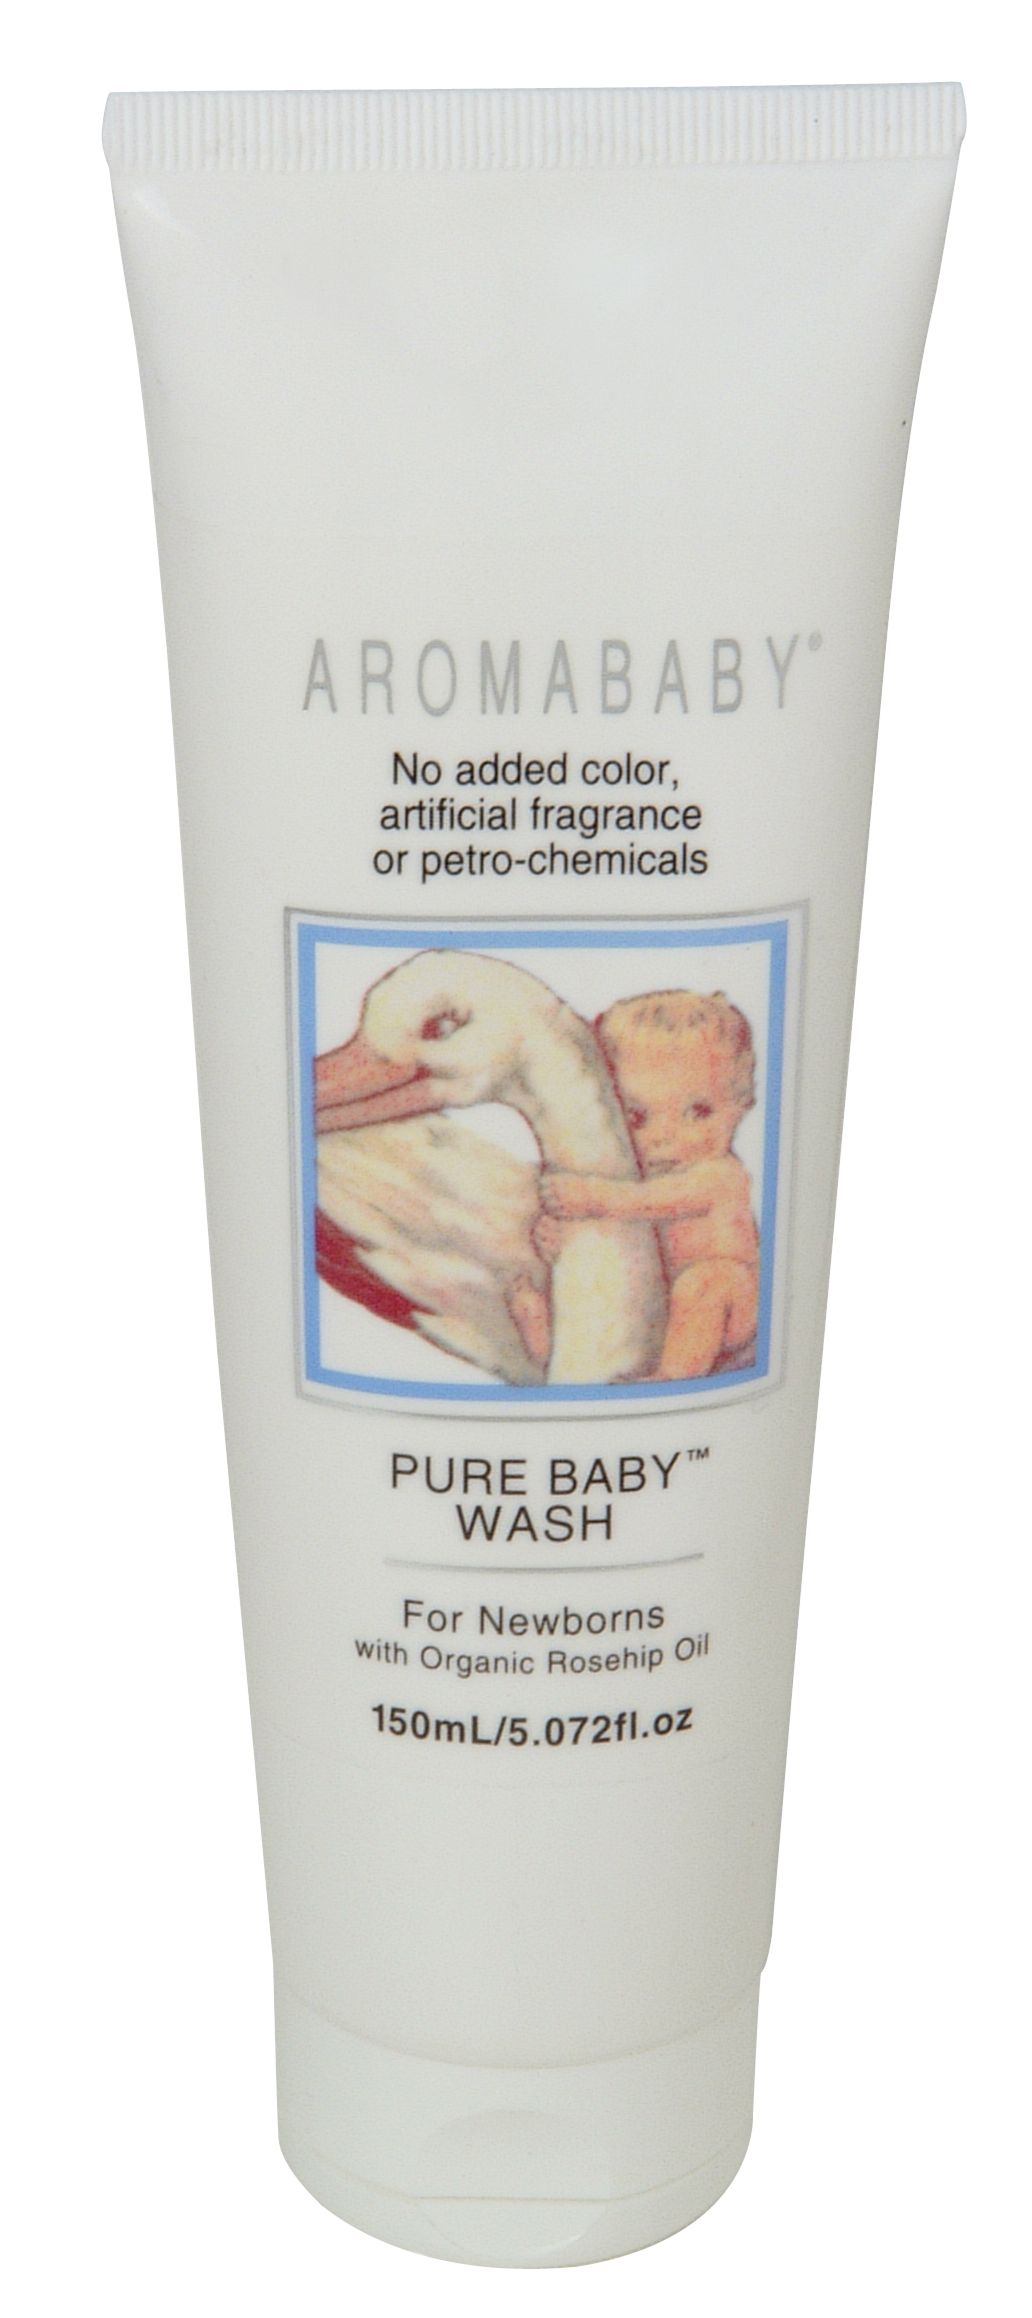 Aromobabypure baby wash Pure products, Organic rosehip